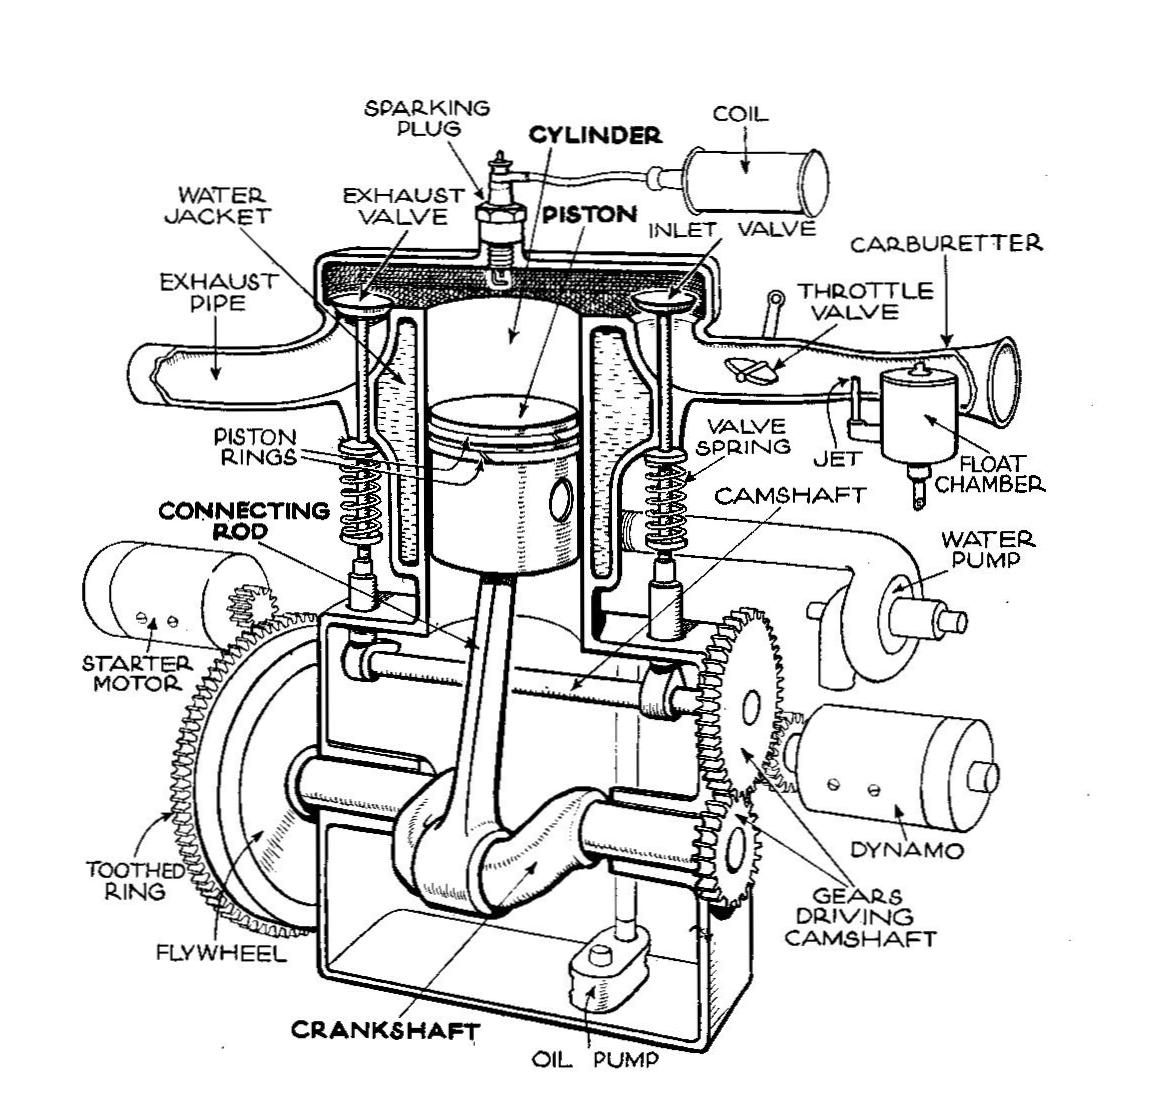 Flathead engine - Wikipedia on jeep liberty power steering diagram, jeep check engine light diagram, 1987 ford f-150 engine diagram, 2004 jeep grand cherokee wire diagram, 1999 jeep cherokee engine diagram, jeep grand cherokee parts diagram, 97 jeep grand cherokee belt routing diagram, jeep 4 6 stroker kit, jeep 4.7 engine diagram, jeep engine swap, jeep engine parts, 1996 jeep cherokee engine diagram, 2006 jeep wrangler oxygen sensor diagram, 40 jeep engine diagram, 98 jeep cherokee engine diagram, amc 304 jeep engine diagram, 2000 jeep cherokee sport front end diagram, jeep compass engine diagram, jeep 4.2 engine vacuum diagram, 2000 jeep cherokee engine diagram,